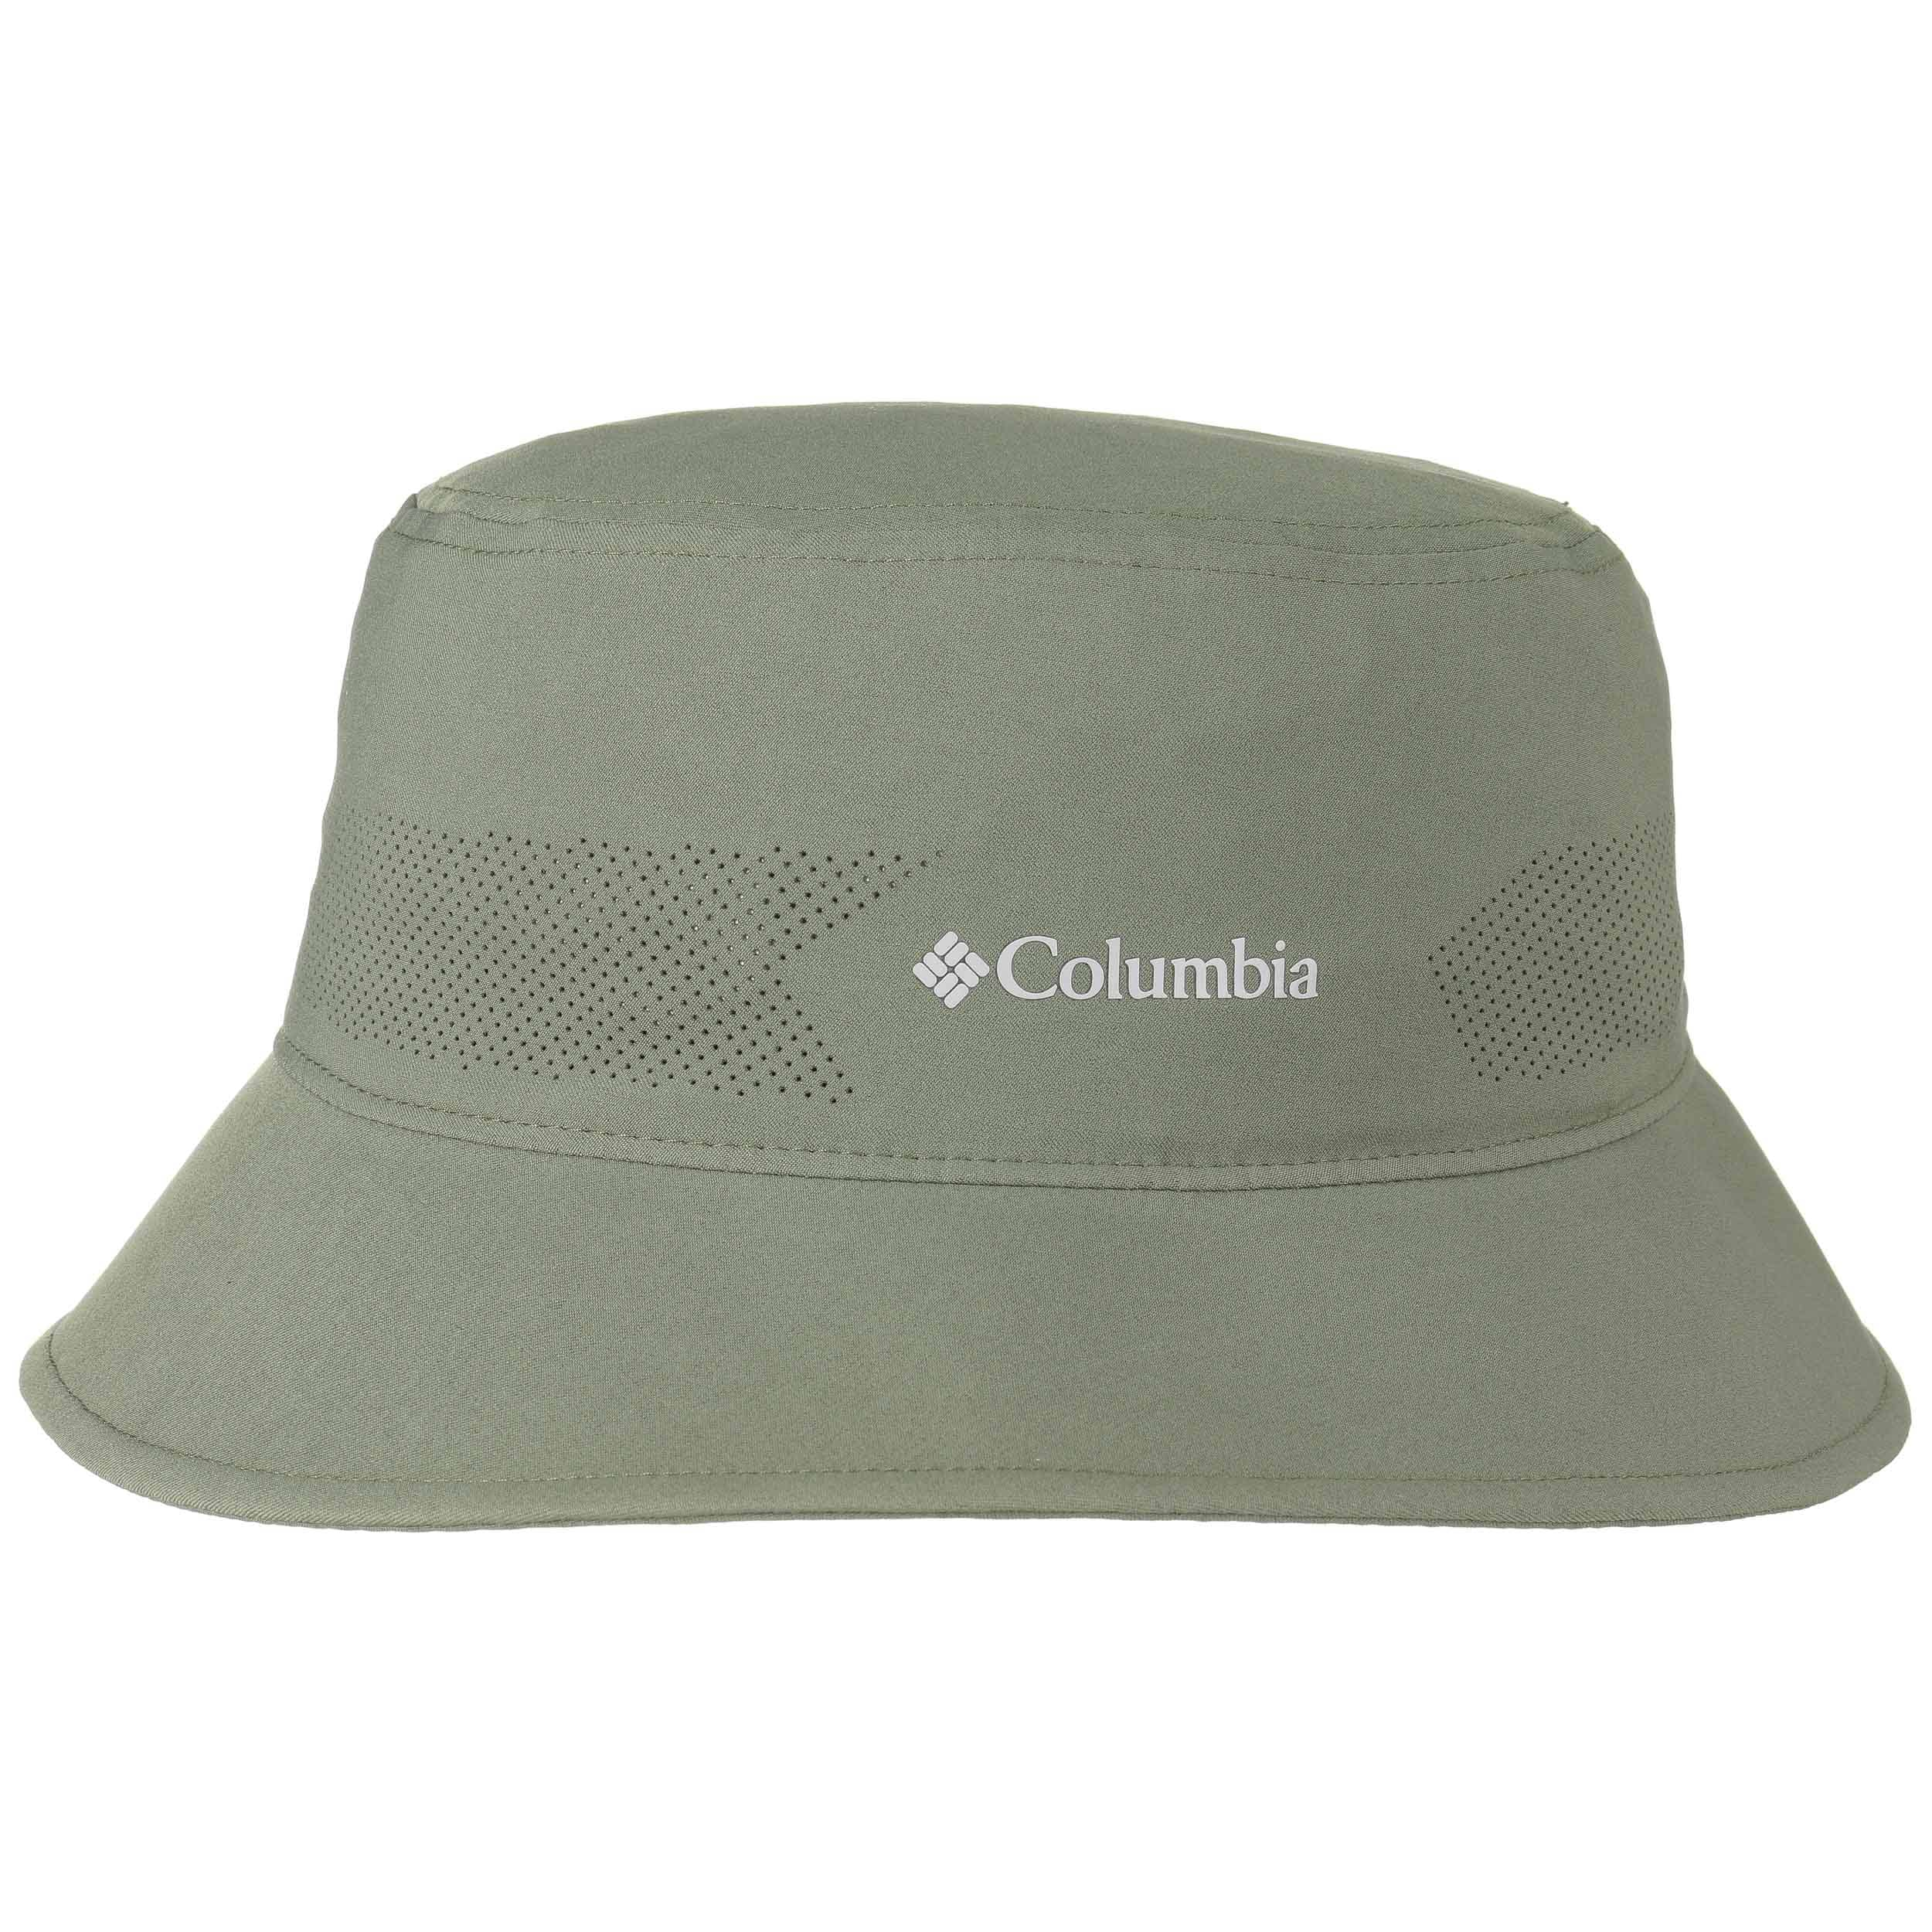 ... Cappello Silver Ridge II by Columbia - oliva 4 ... 589cd0d6190b